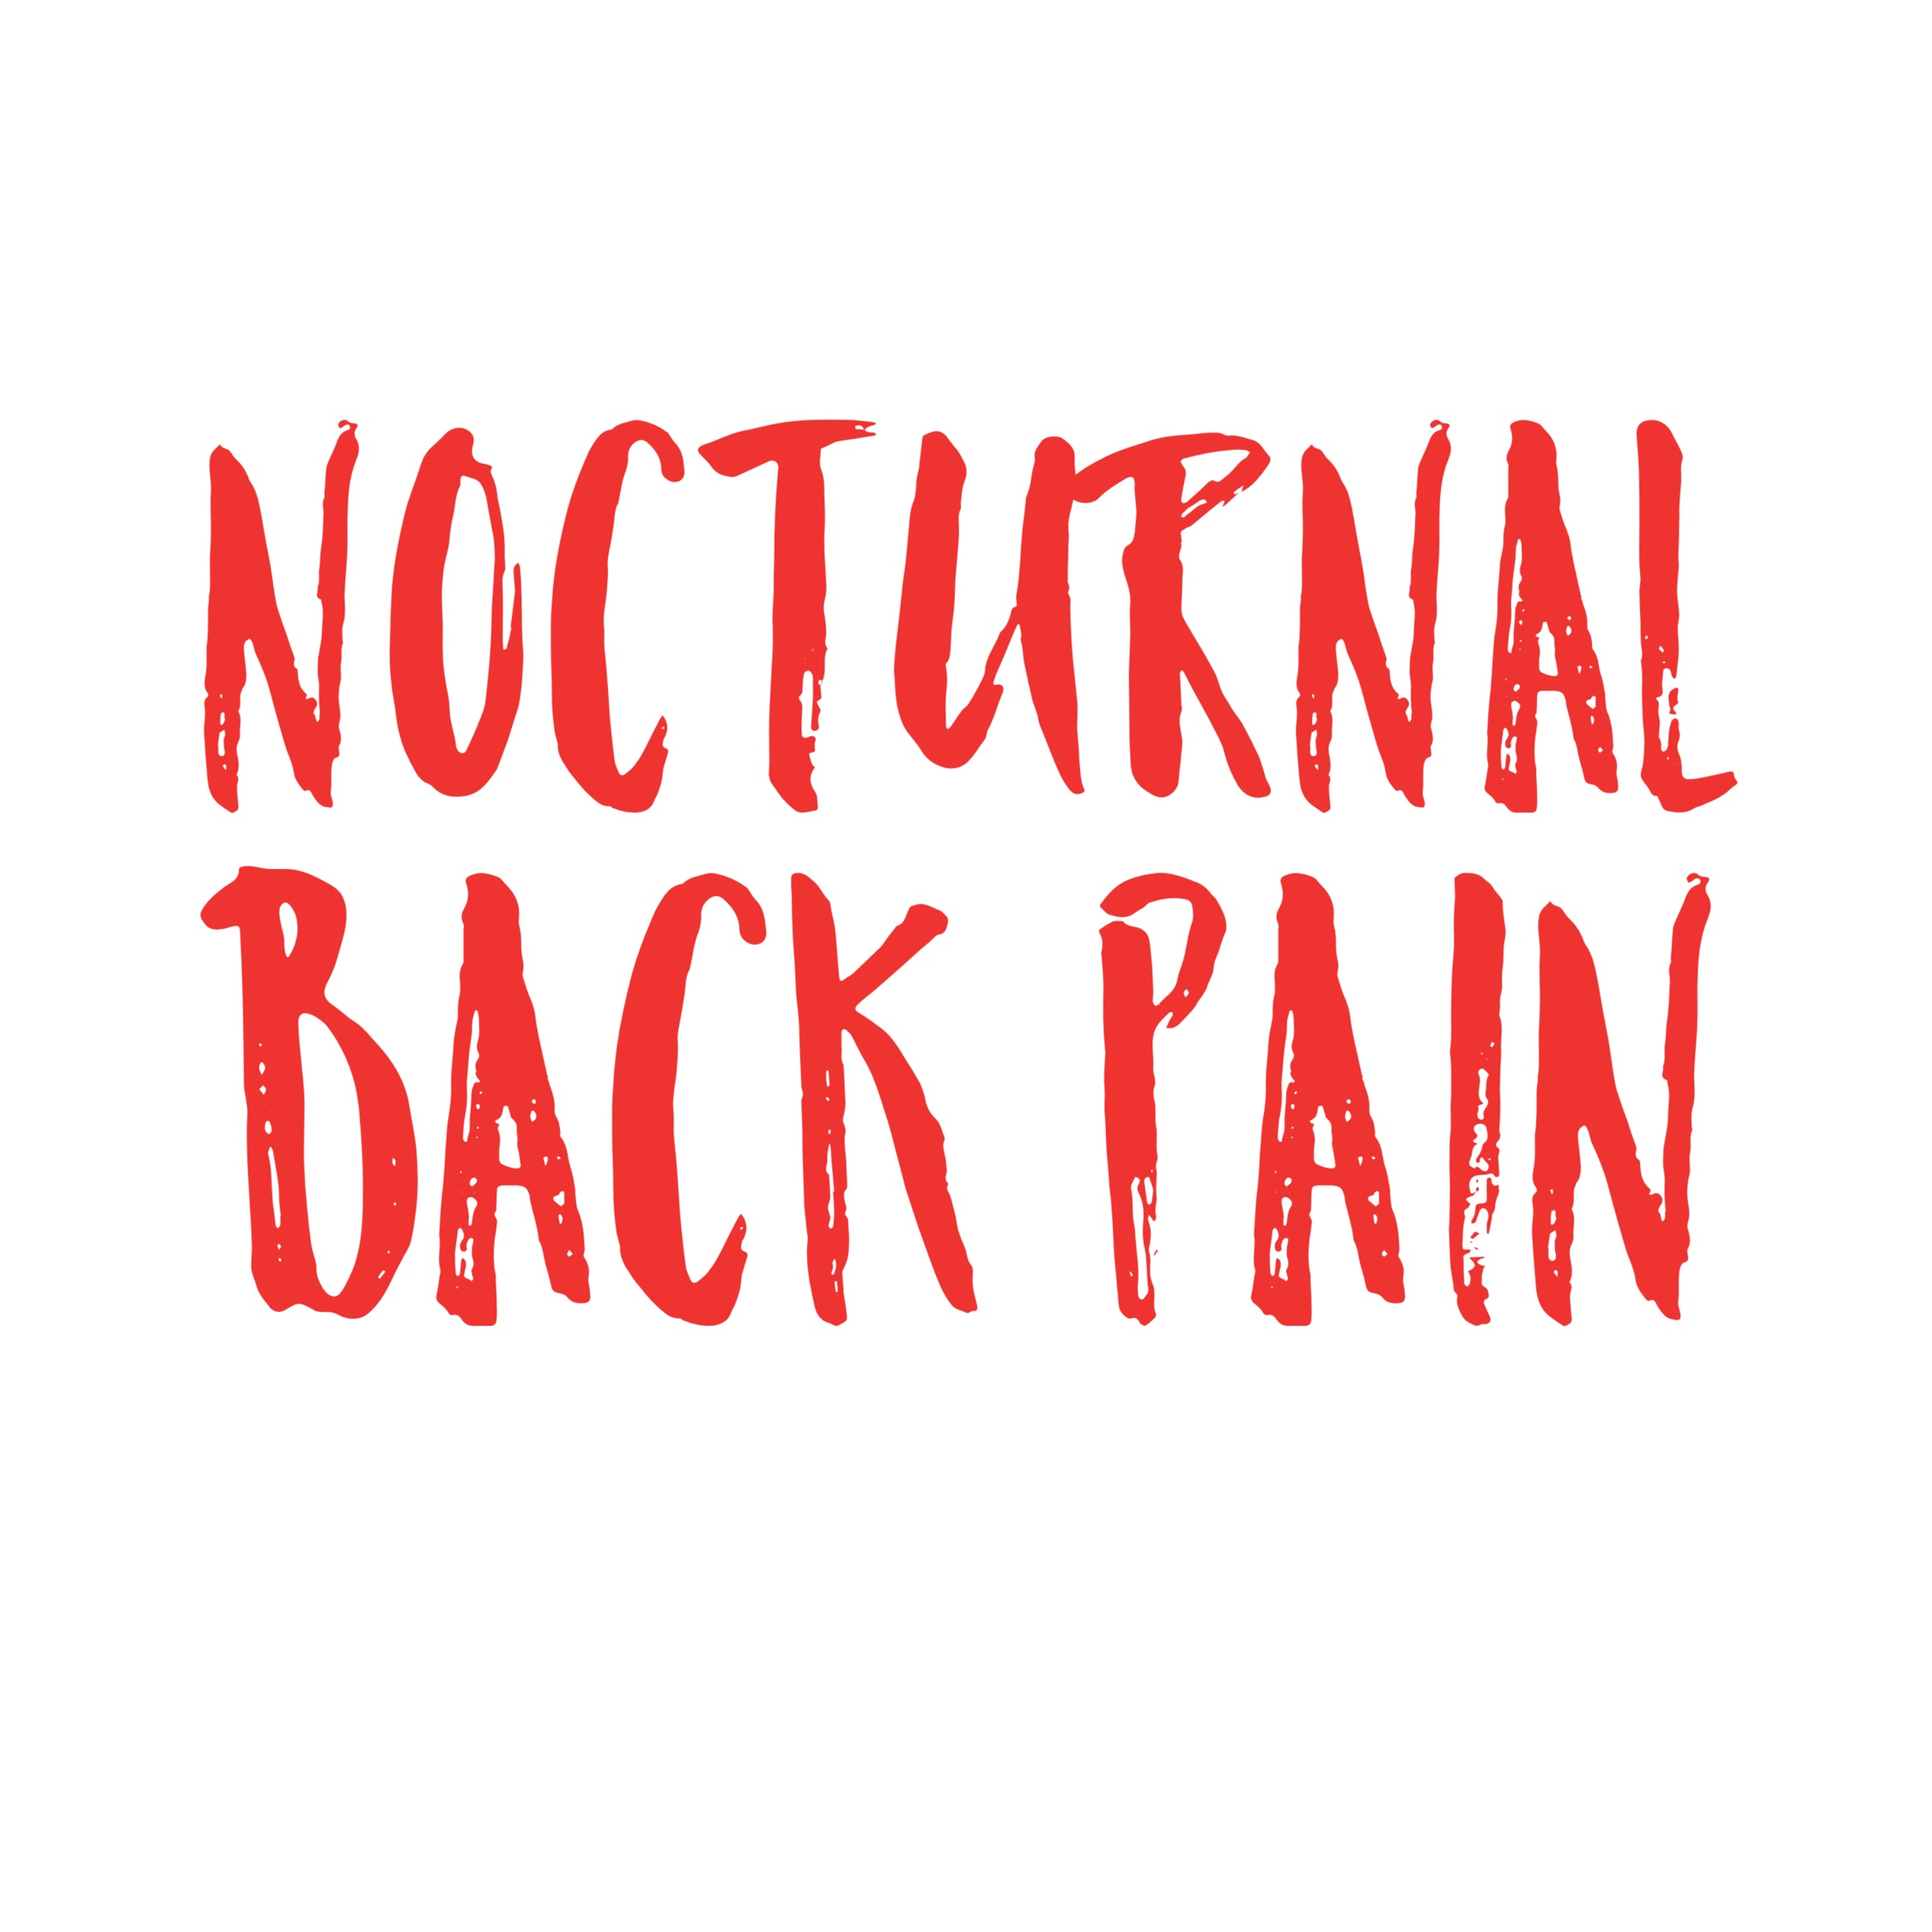 Nocturnal Back Pain